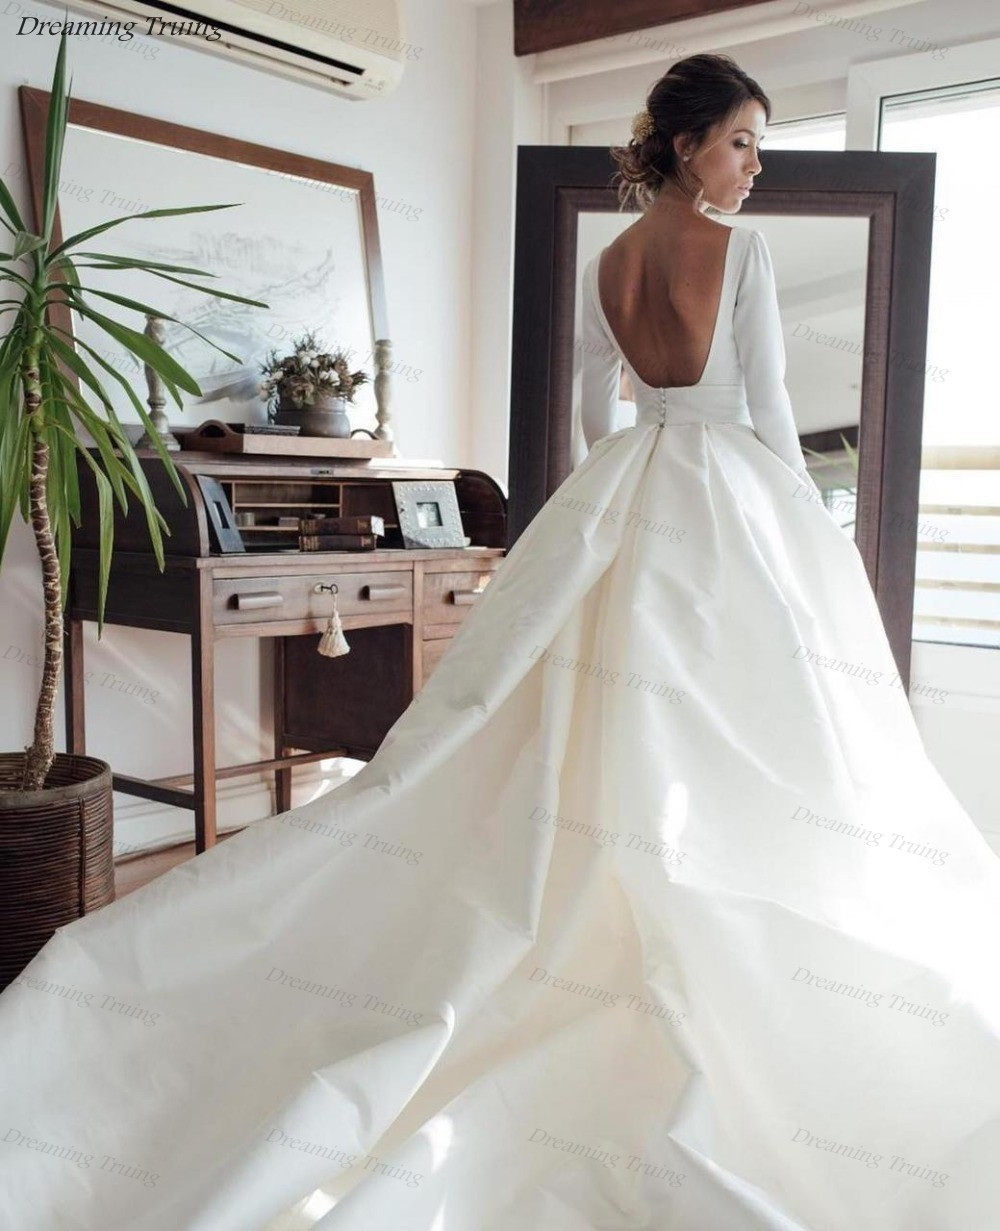 Wedding Gowns 2019 With Sleeves: Simple Long Sleeves Satin Wedding Dresses With Pockets